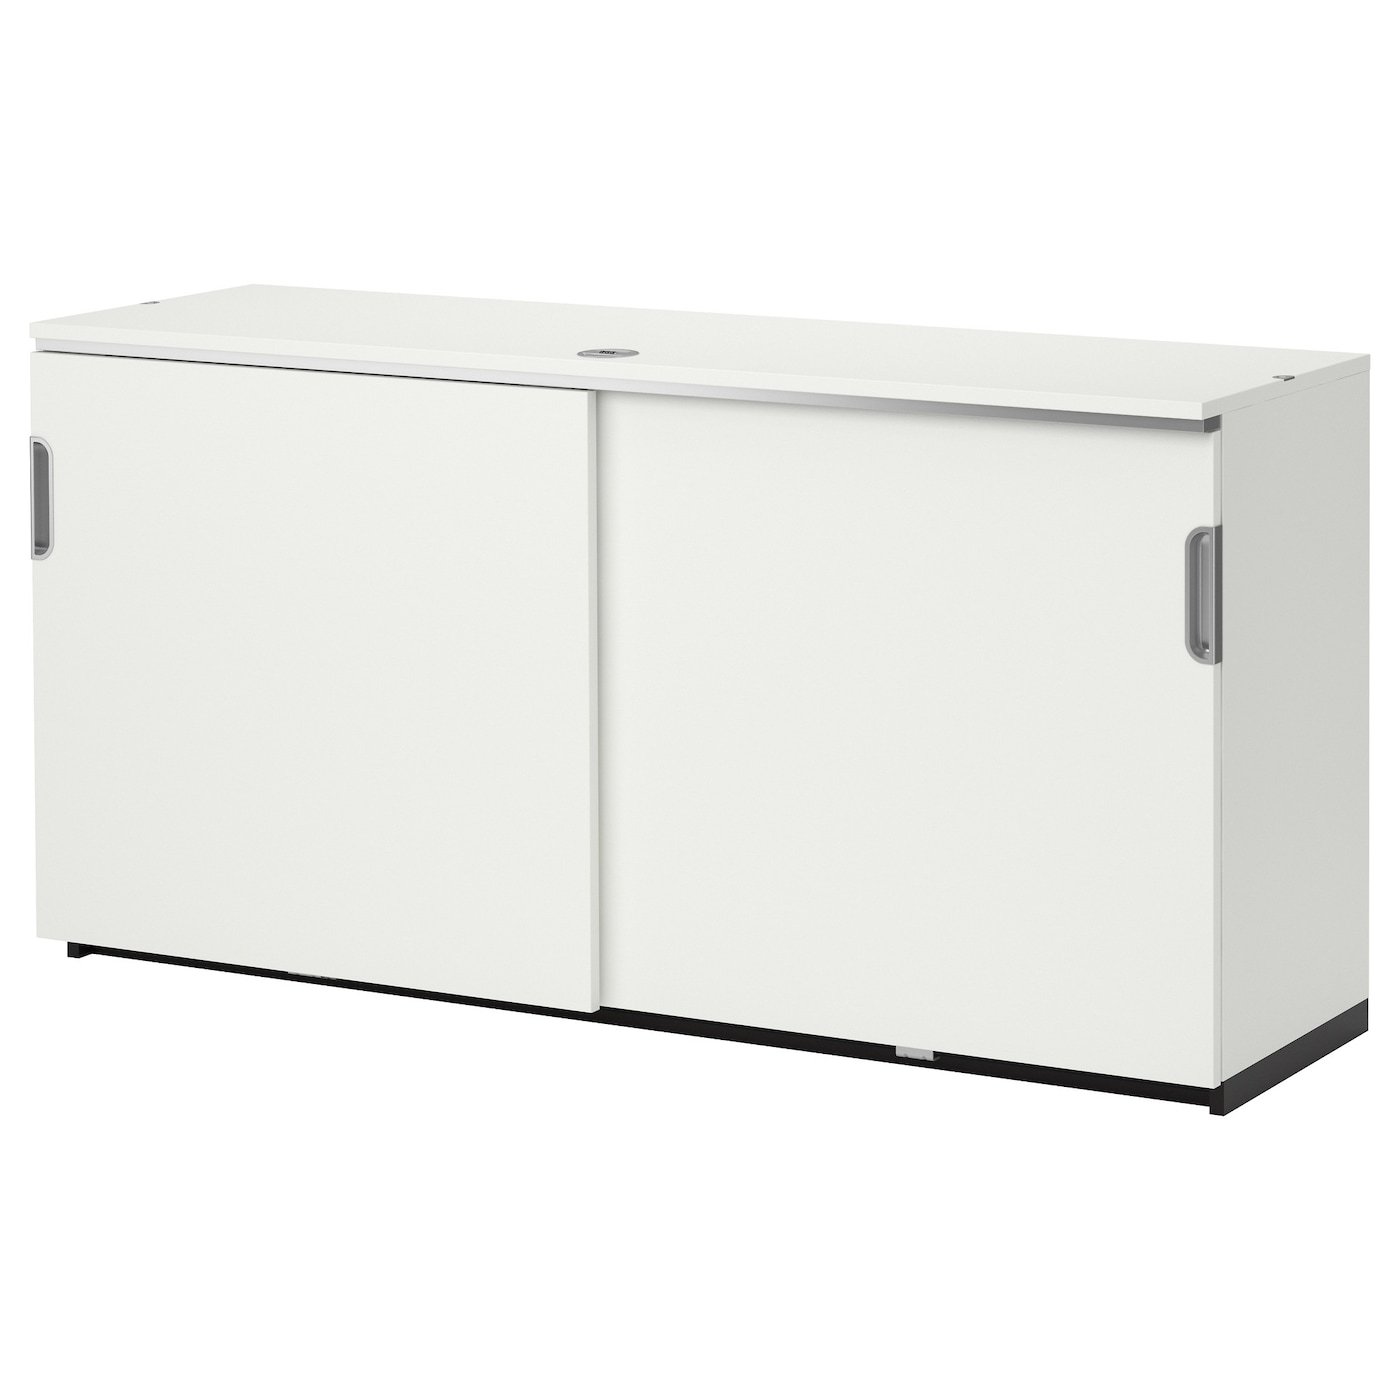 Marvelous IKEA GALANT Cabinet With Sliding Doors Integrated Damper Makes Doors Close  Silently And Gently.